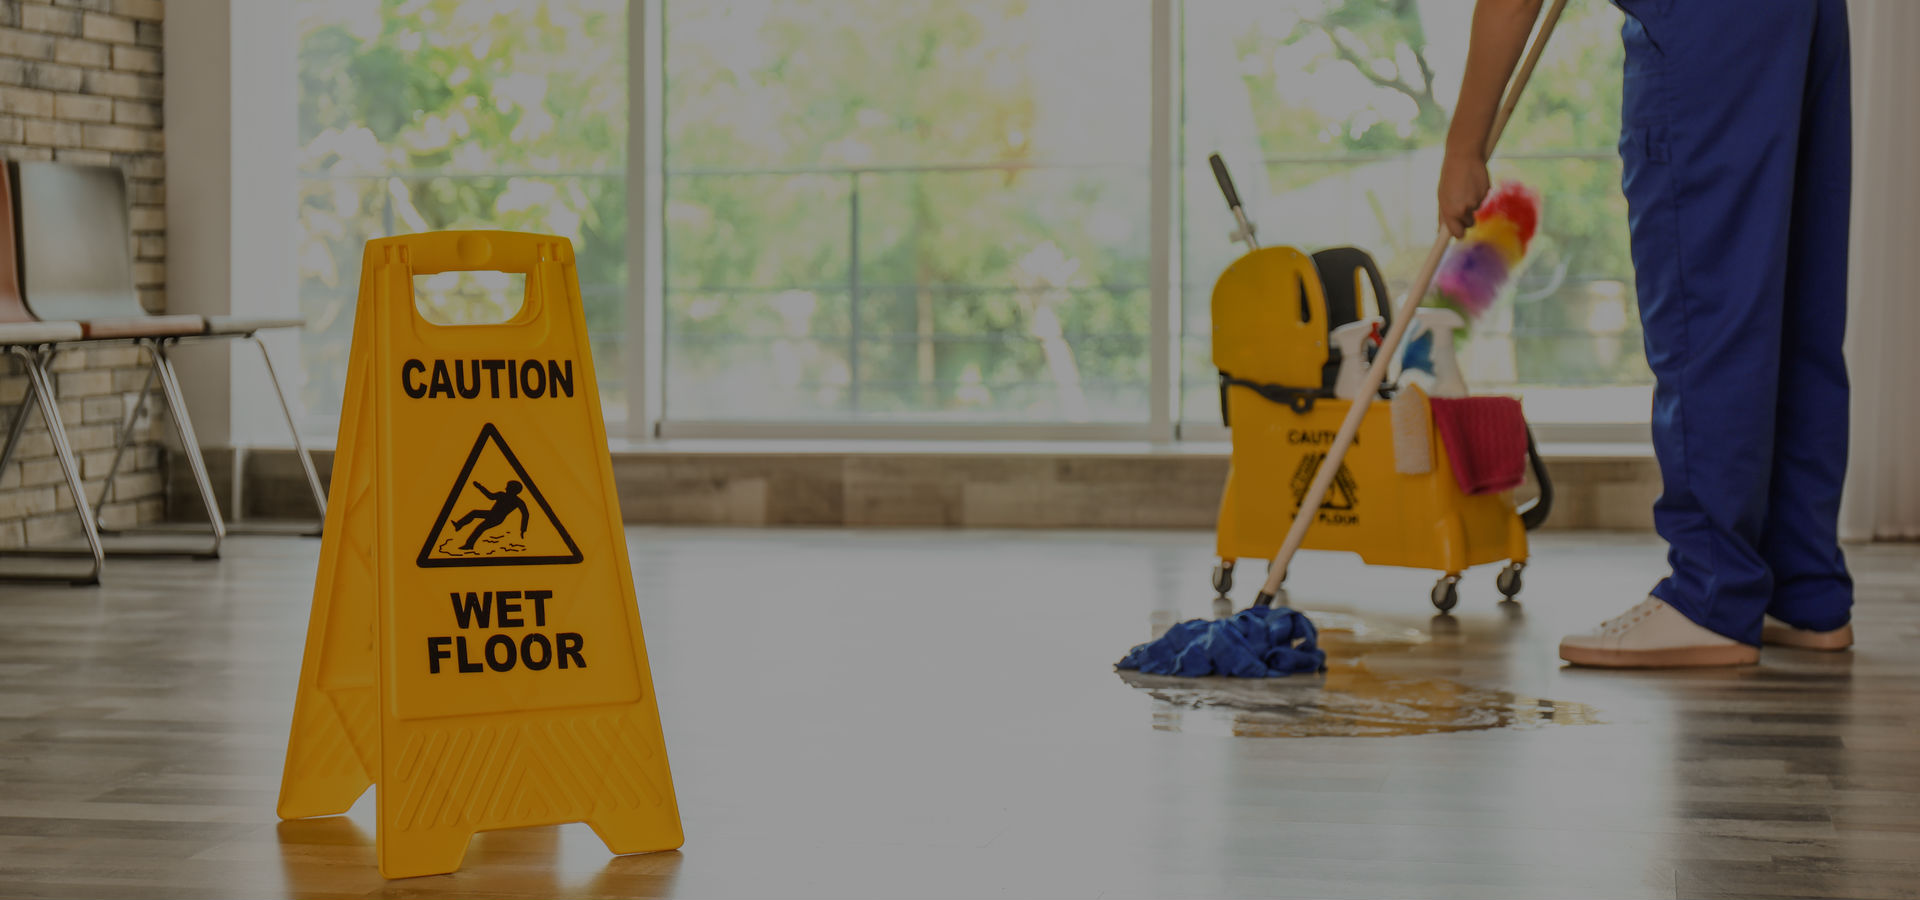 Daily Commercial Cleaning Services